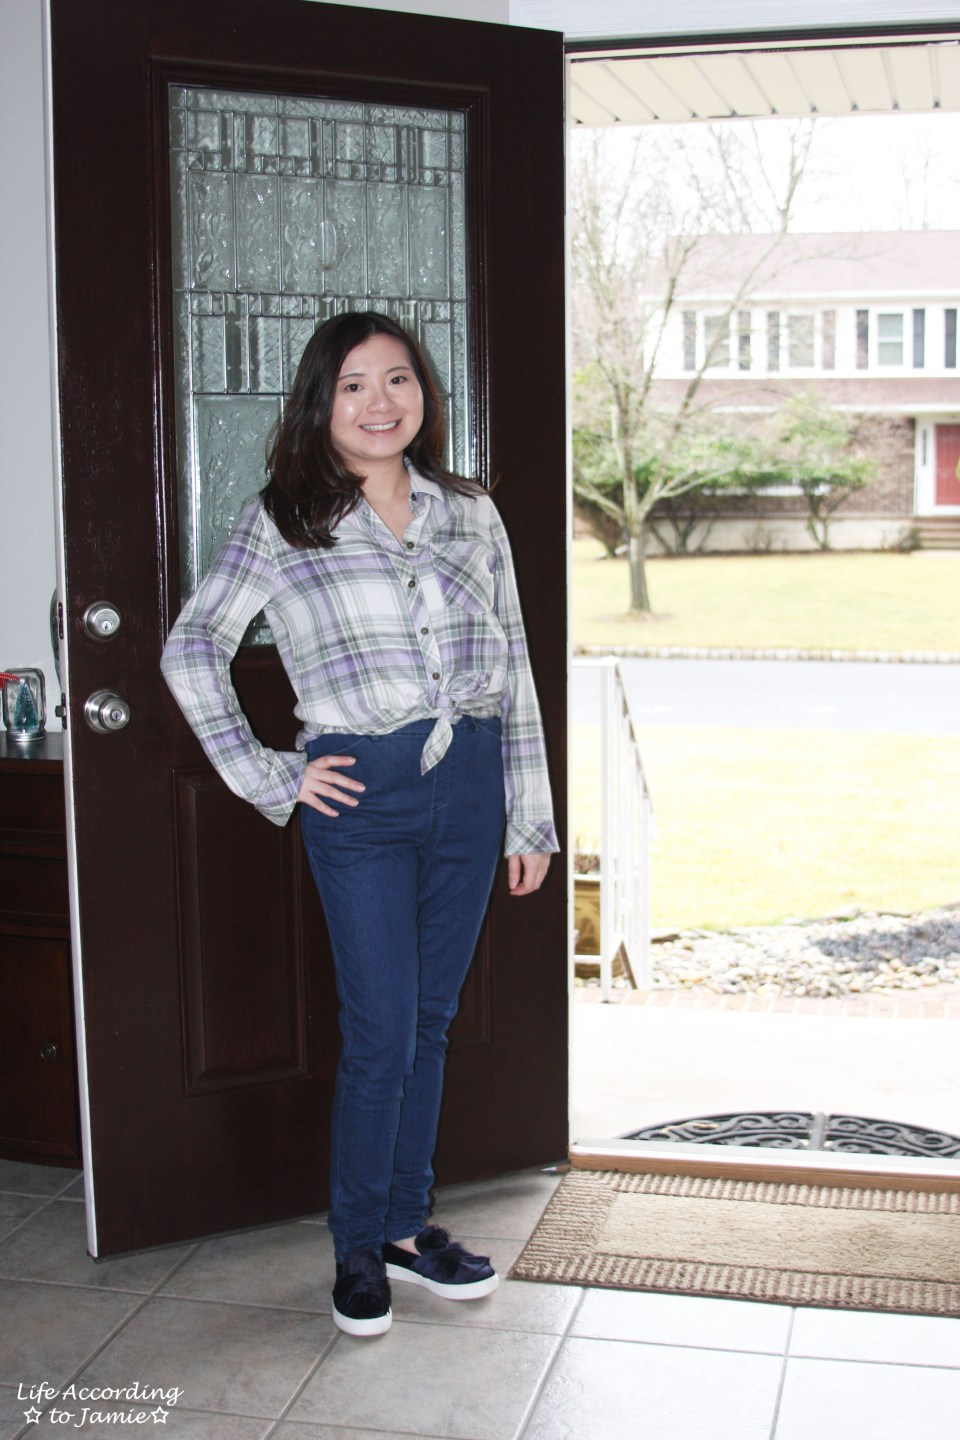 Tied Plaid Top + High Waisted Jeans 10